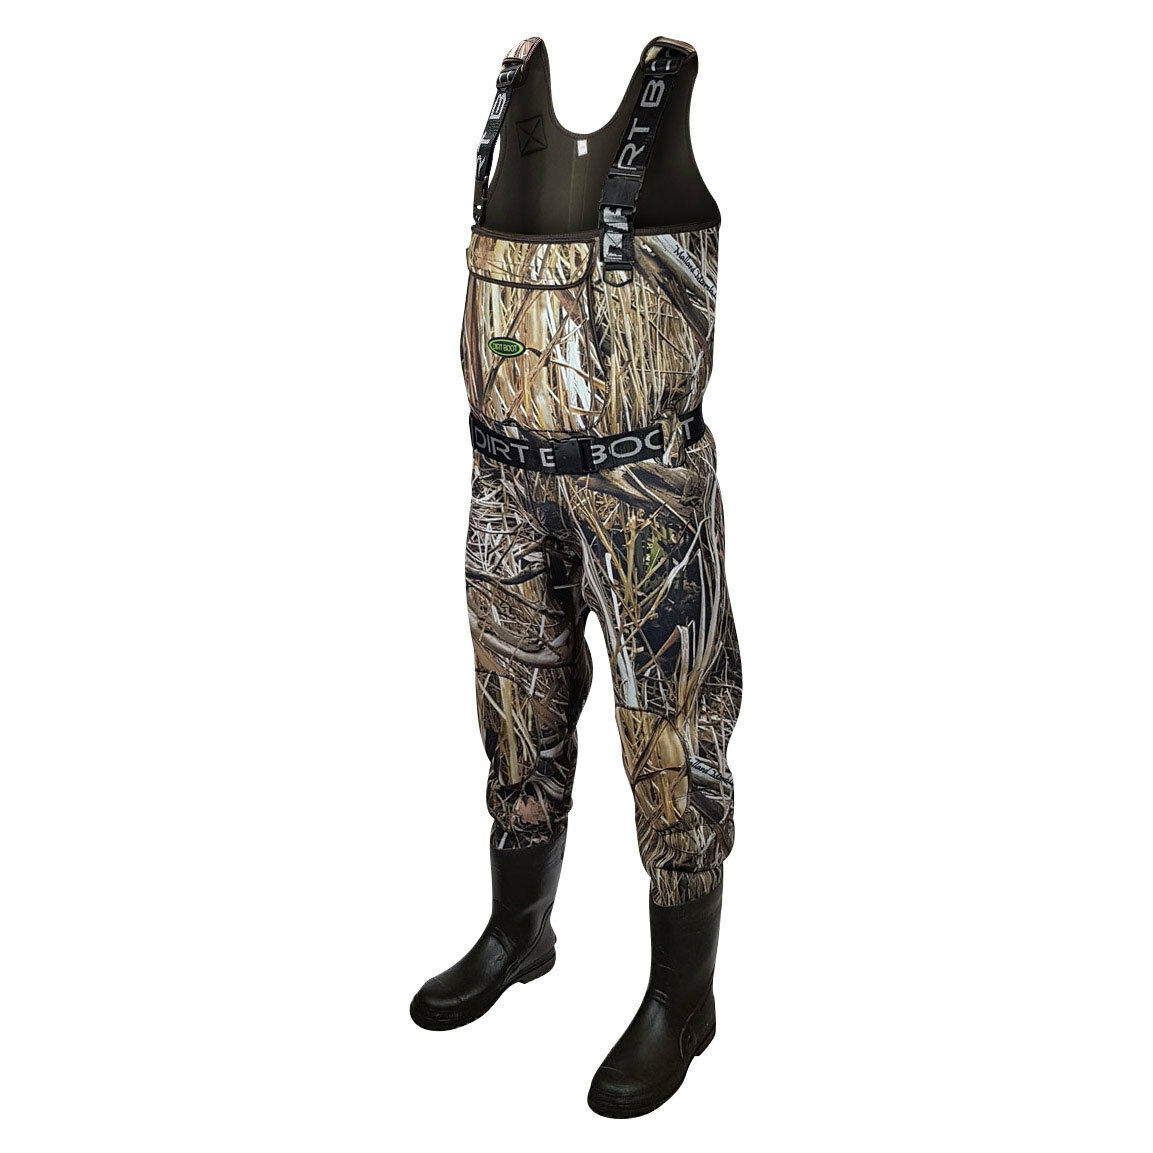 40-47 EU STRONG Fishing Chest Waders PVC like Latex Sizes 7-14,5 Mud